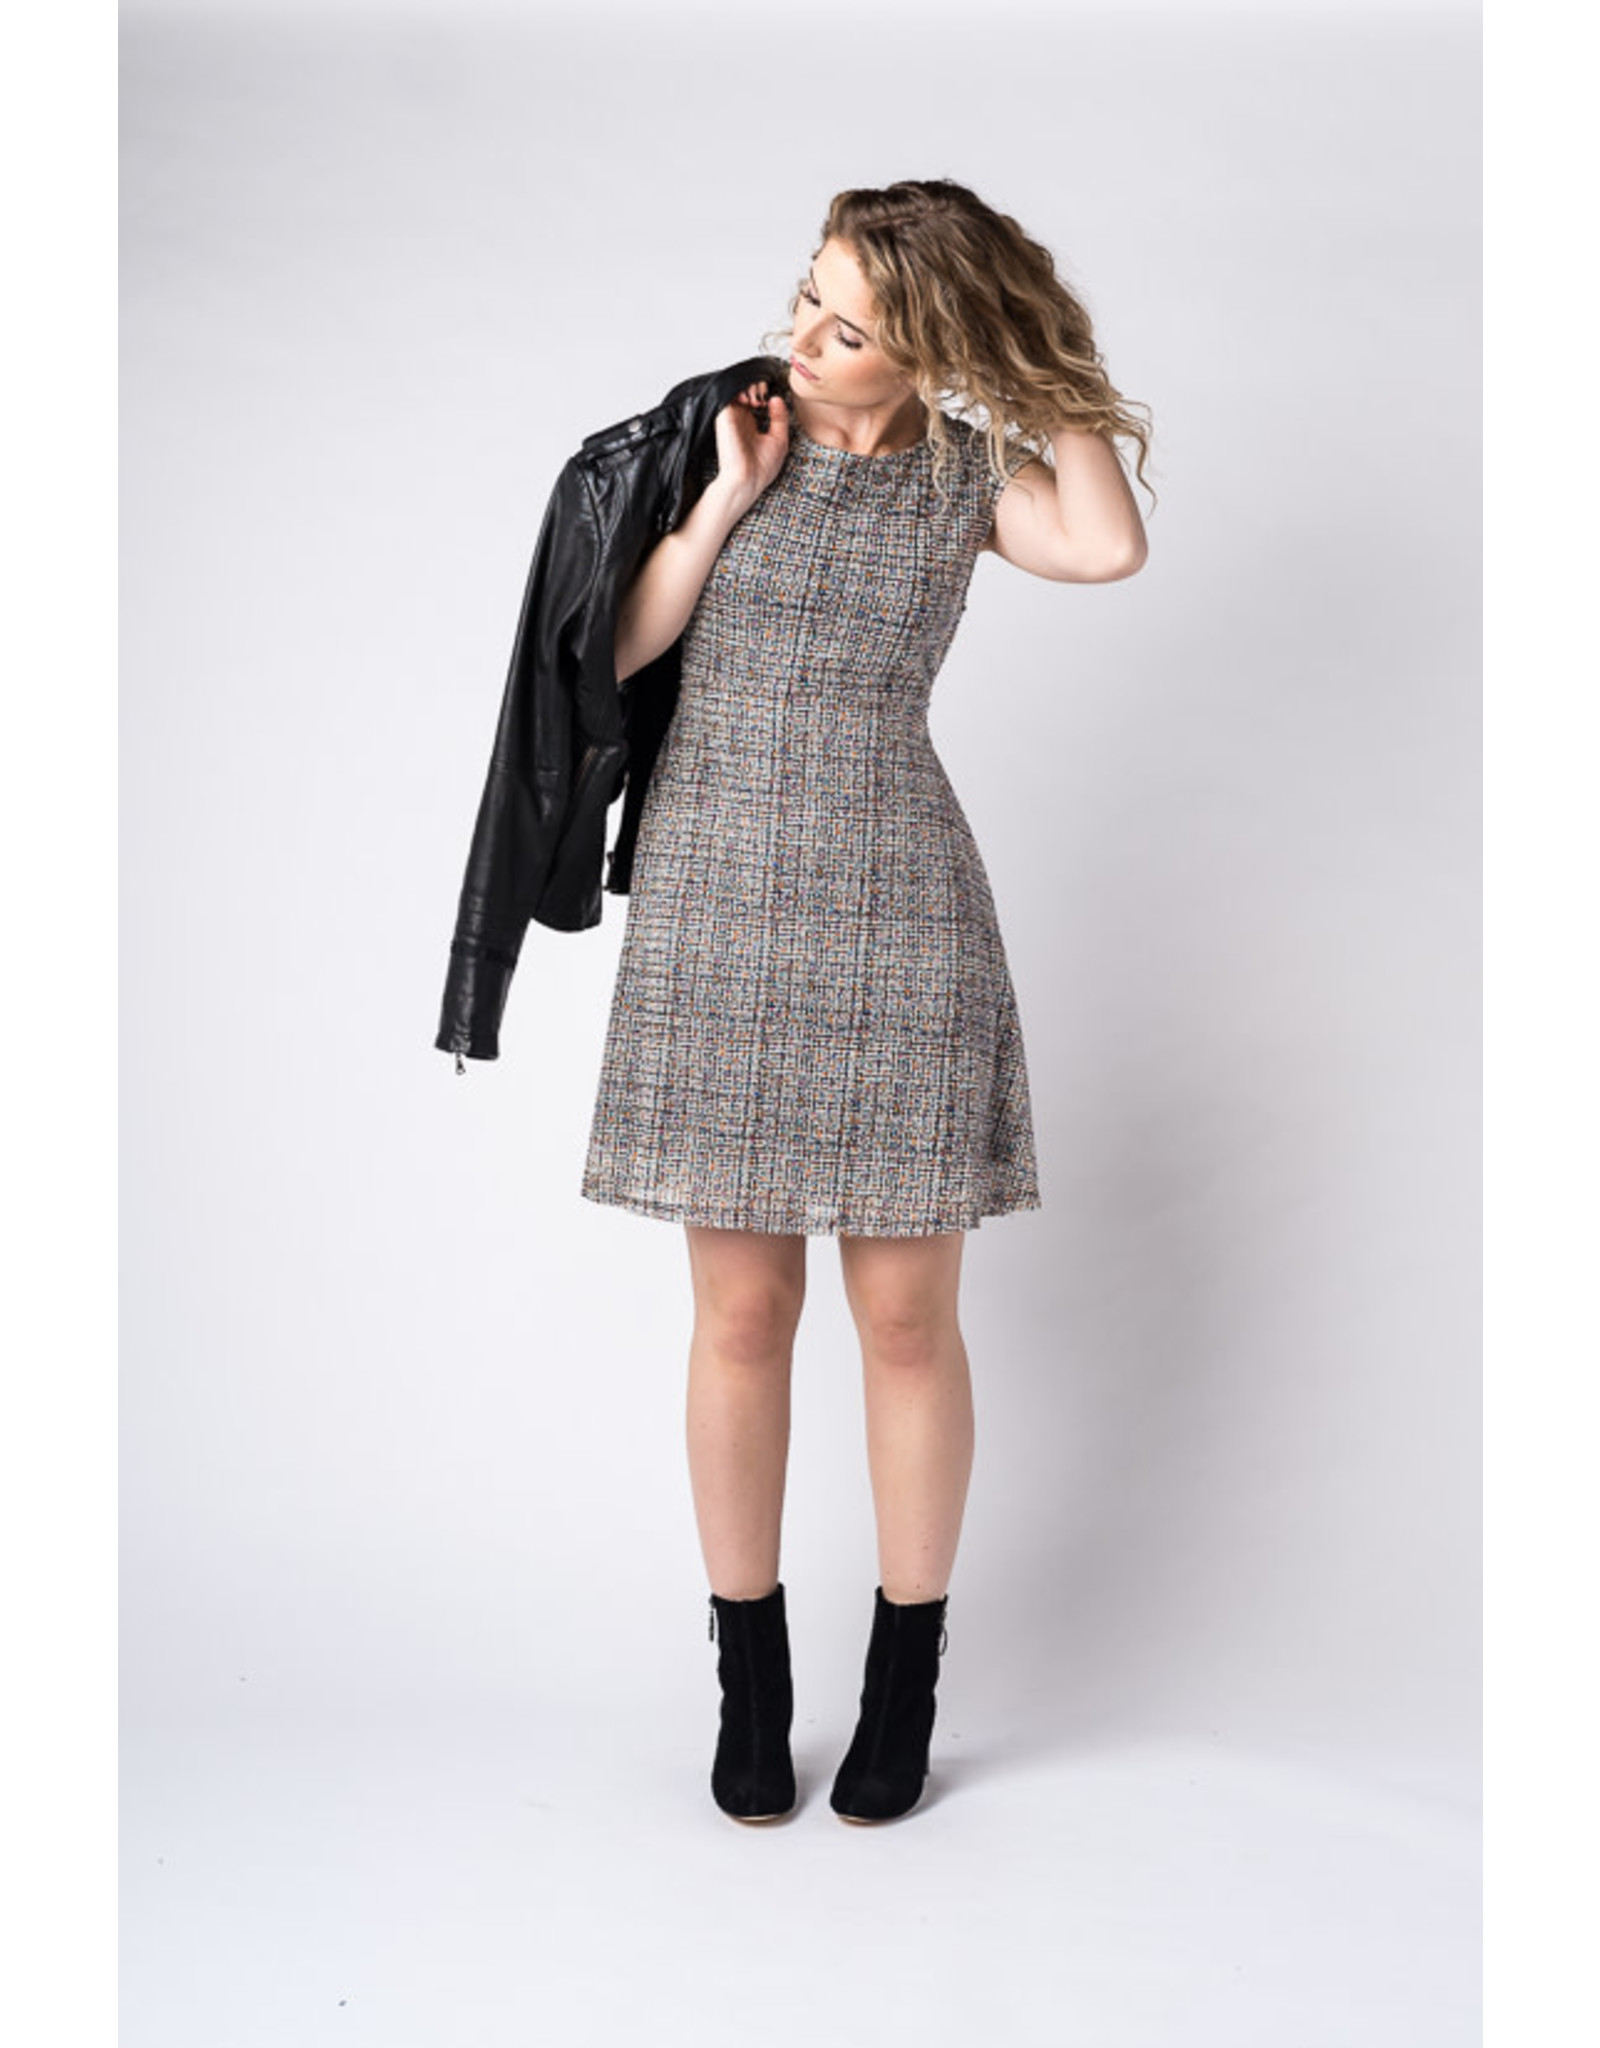 Papillon Knit dress with cap sleeves